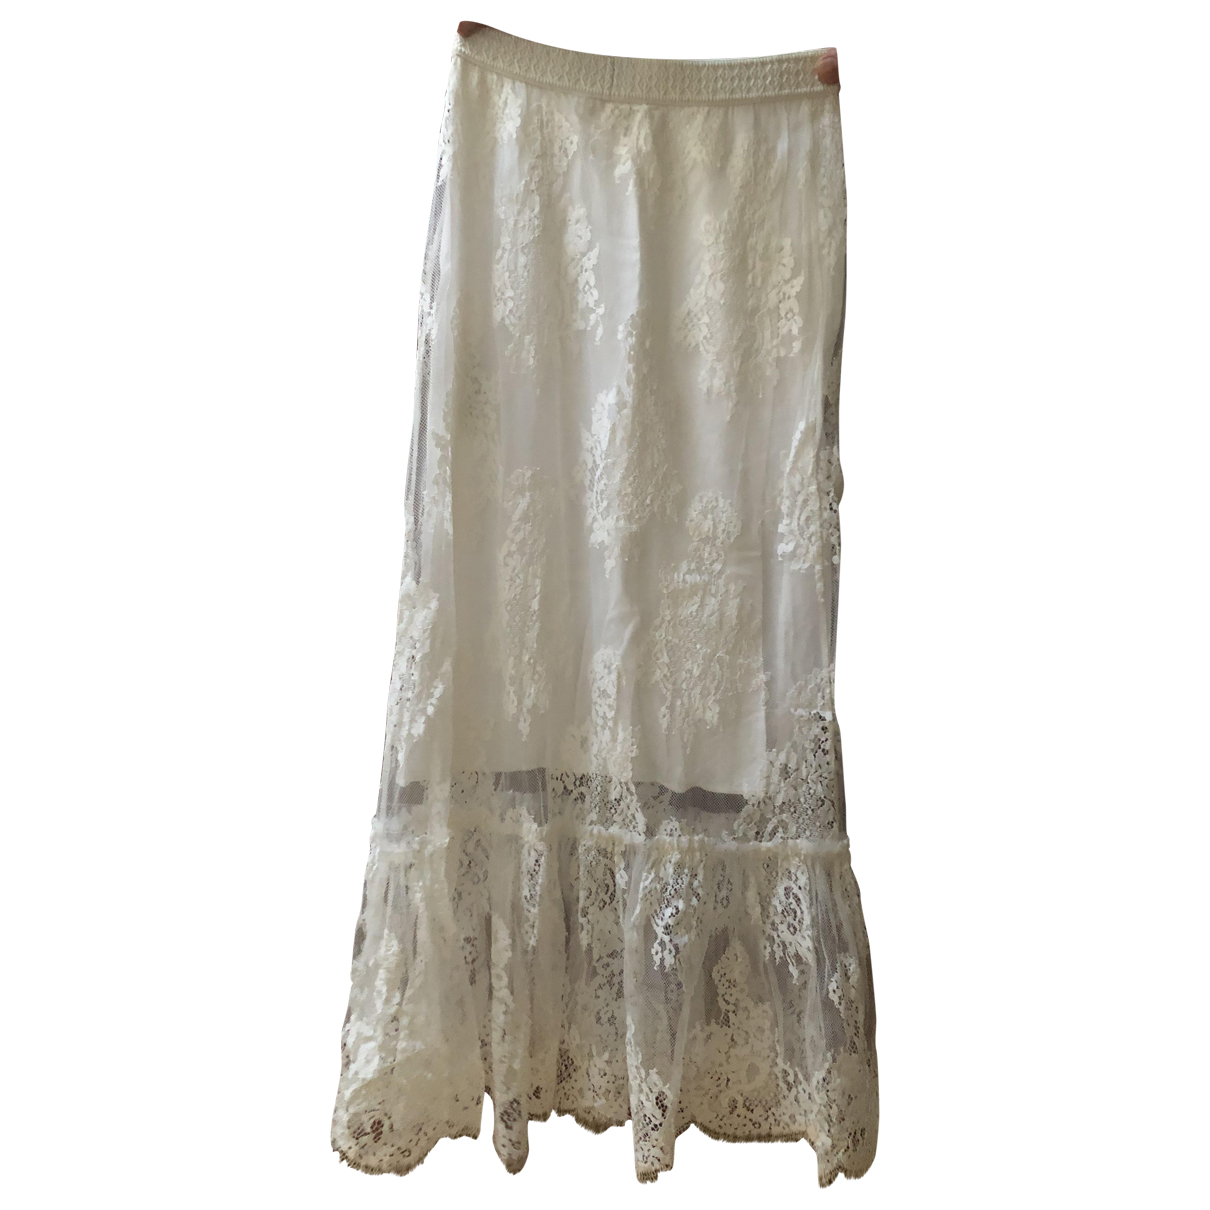 Maje N White skirt for Women 36 FR